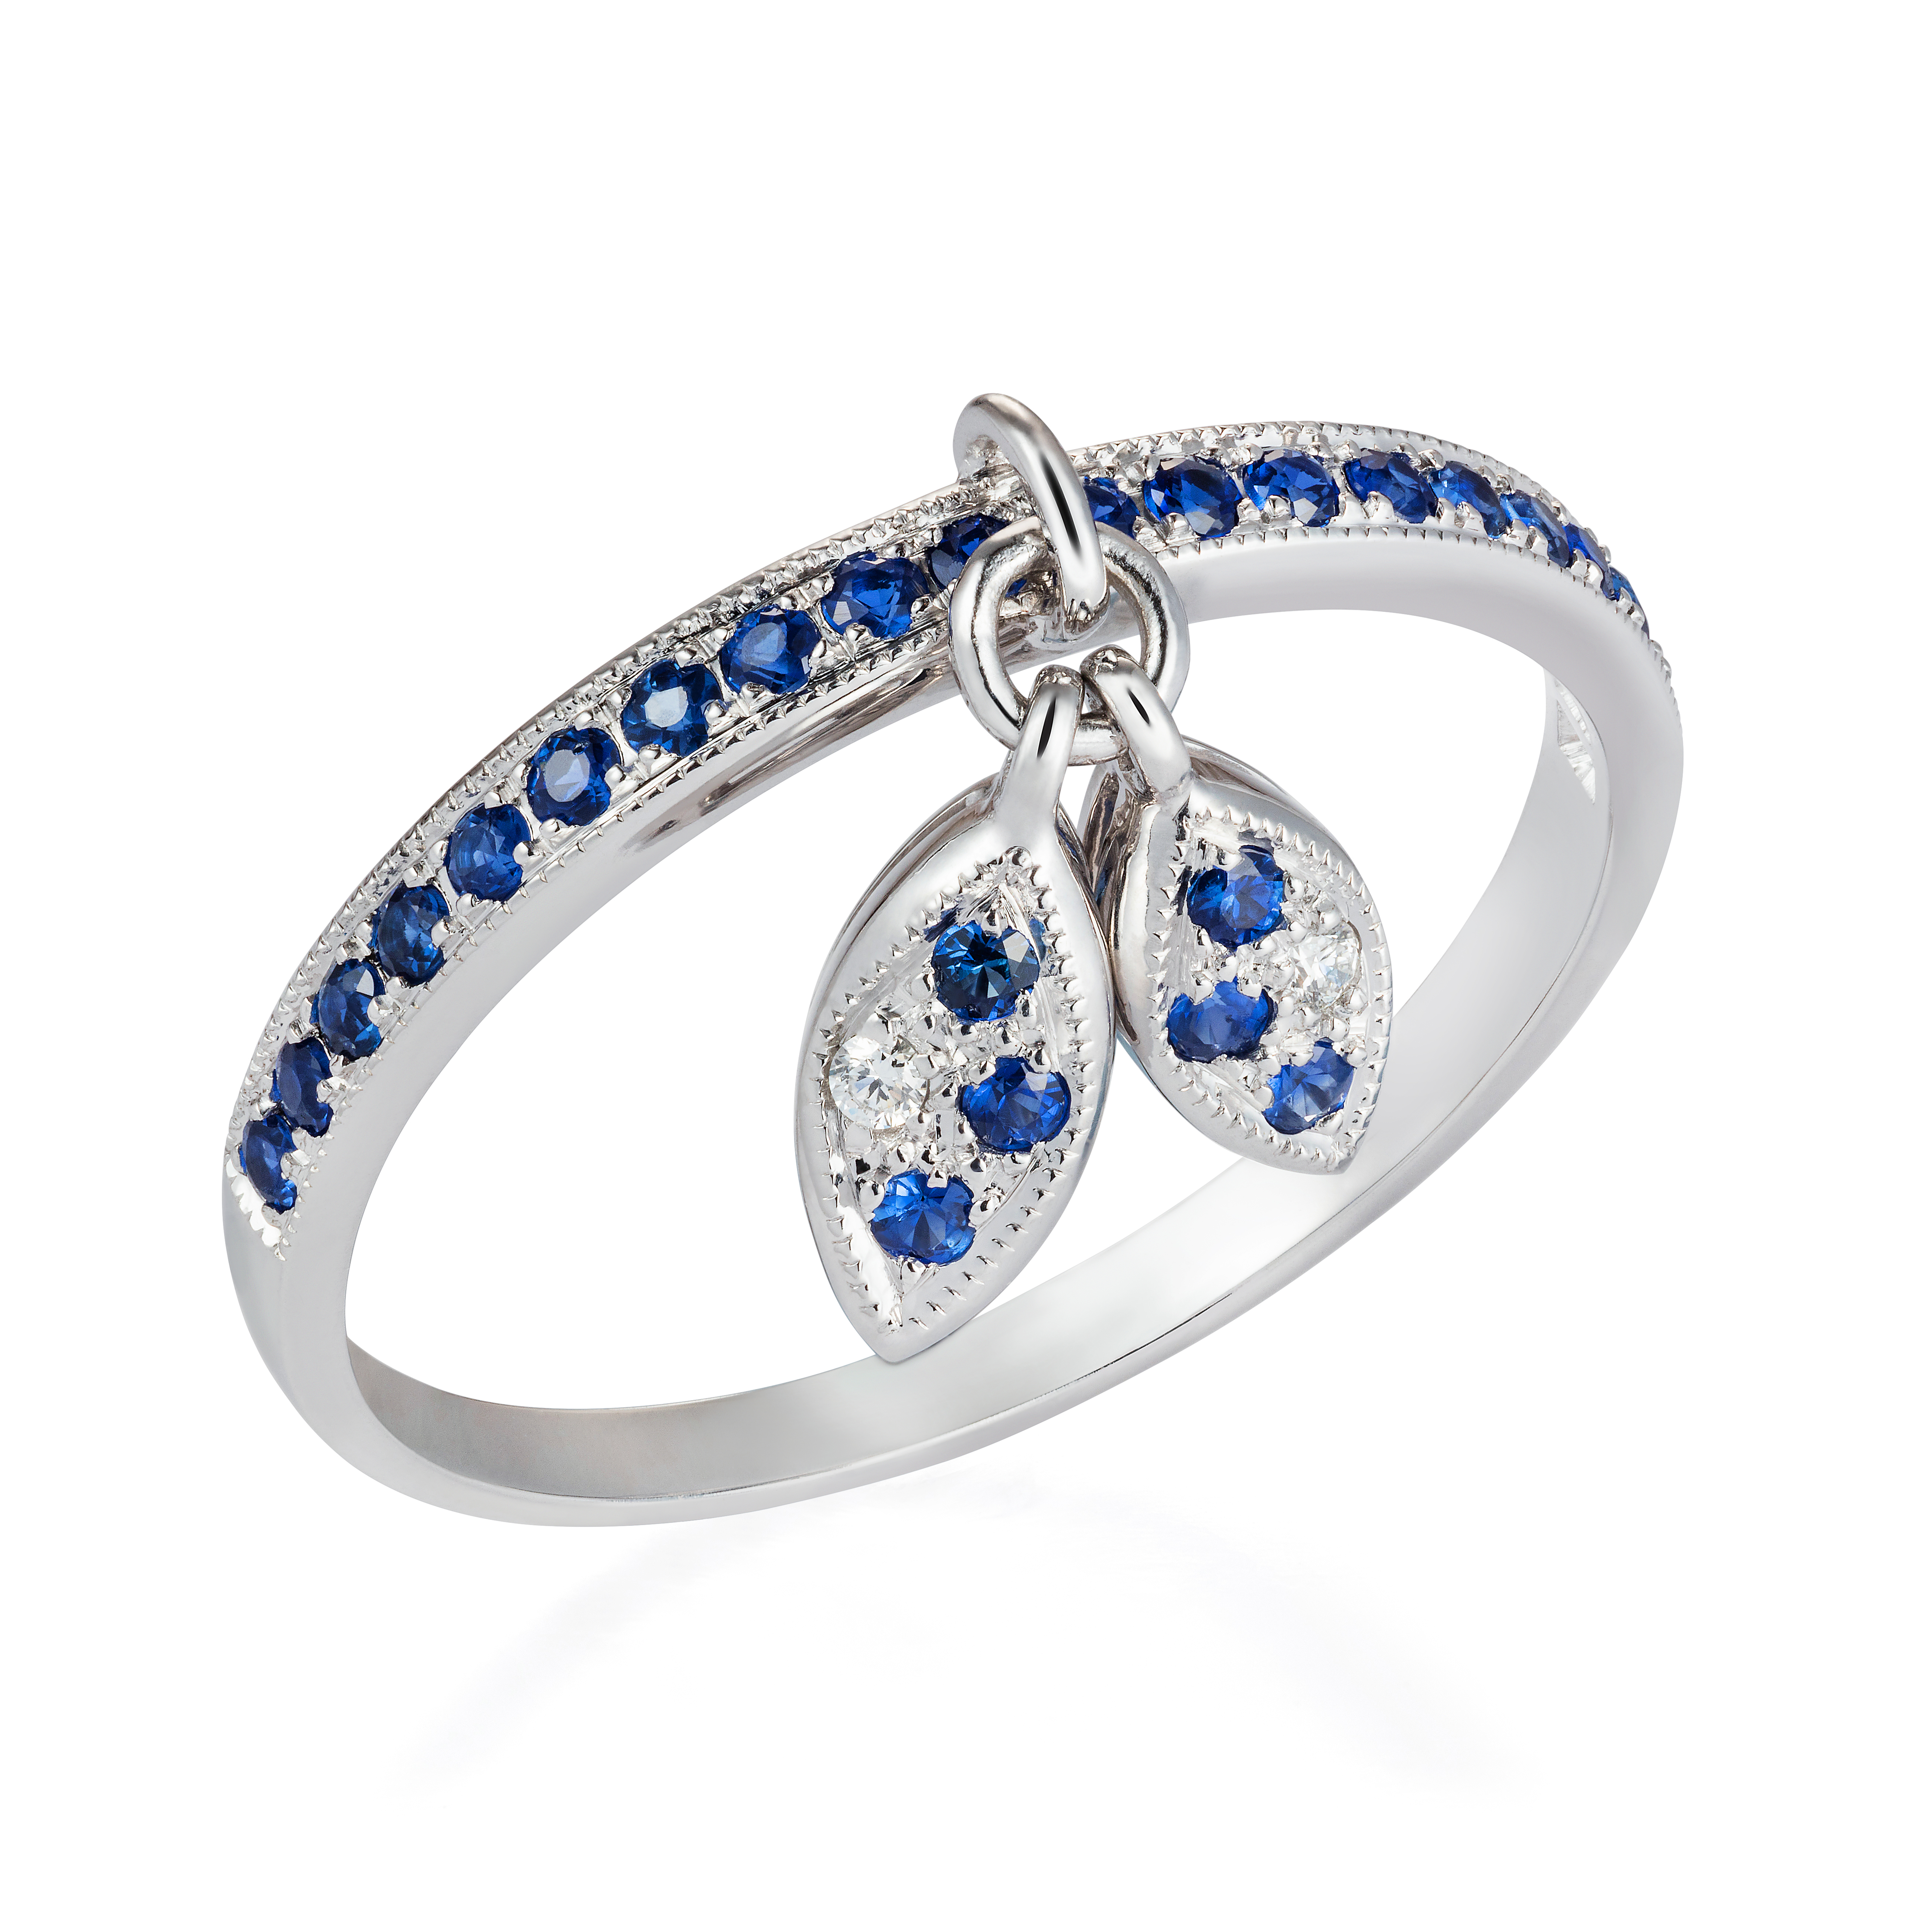 Diamond Leaf Ring – Sapphires And Diamonds In 18k White Gold